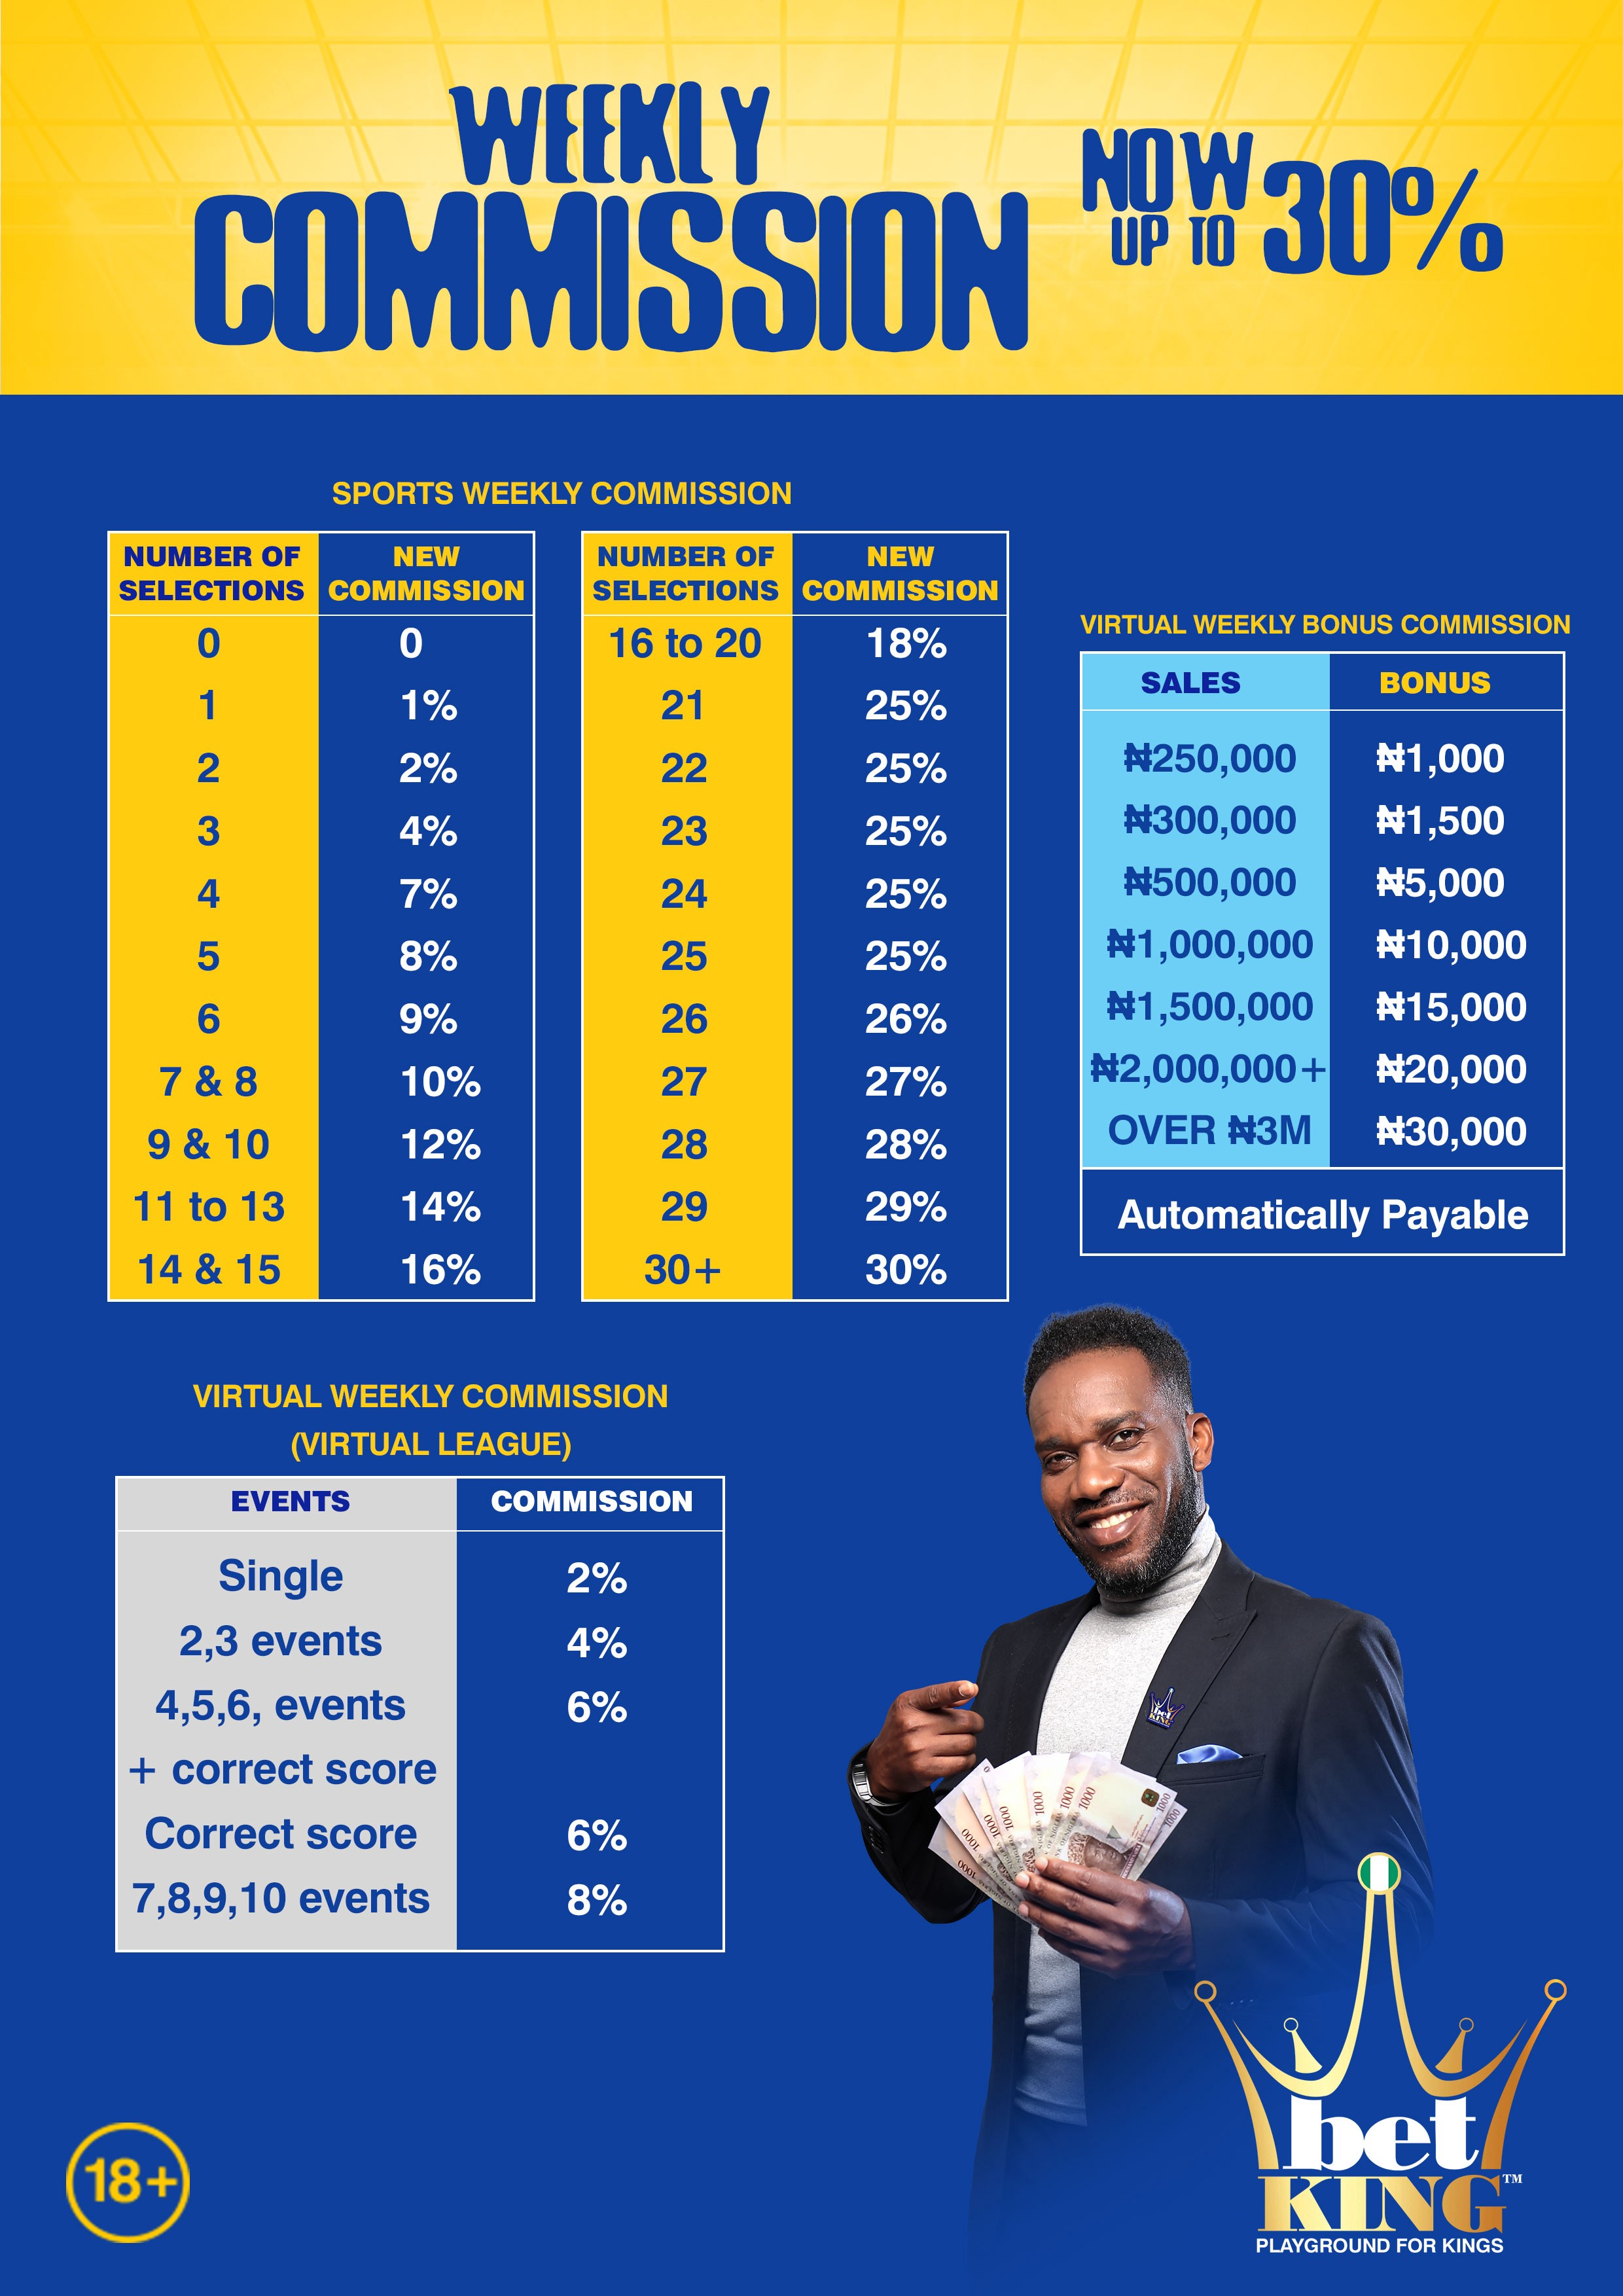 BETKING SPORTSBET COMMISSION STRUCTURE EXPLAINED - multit